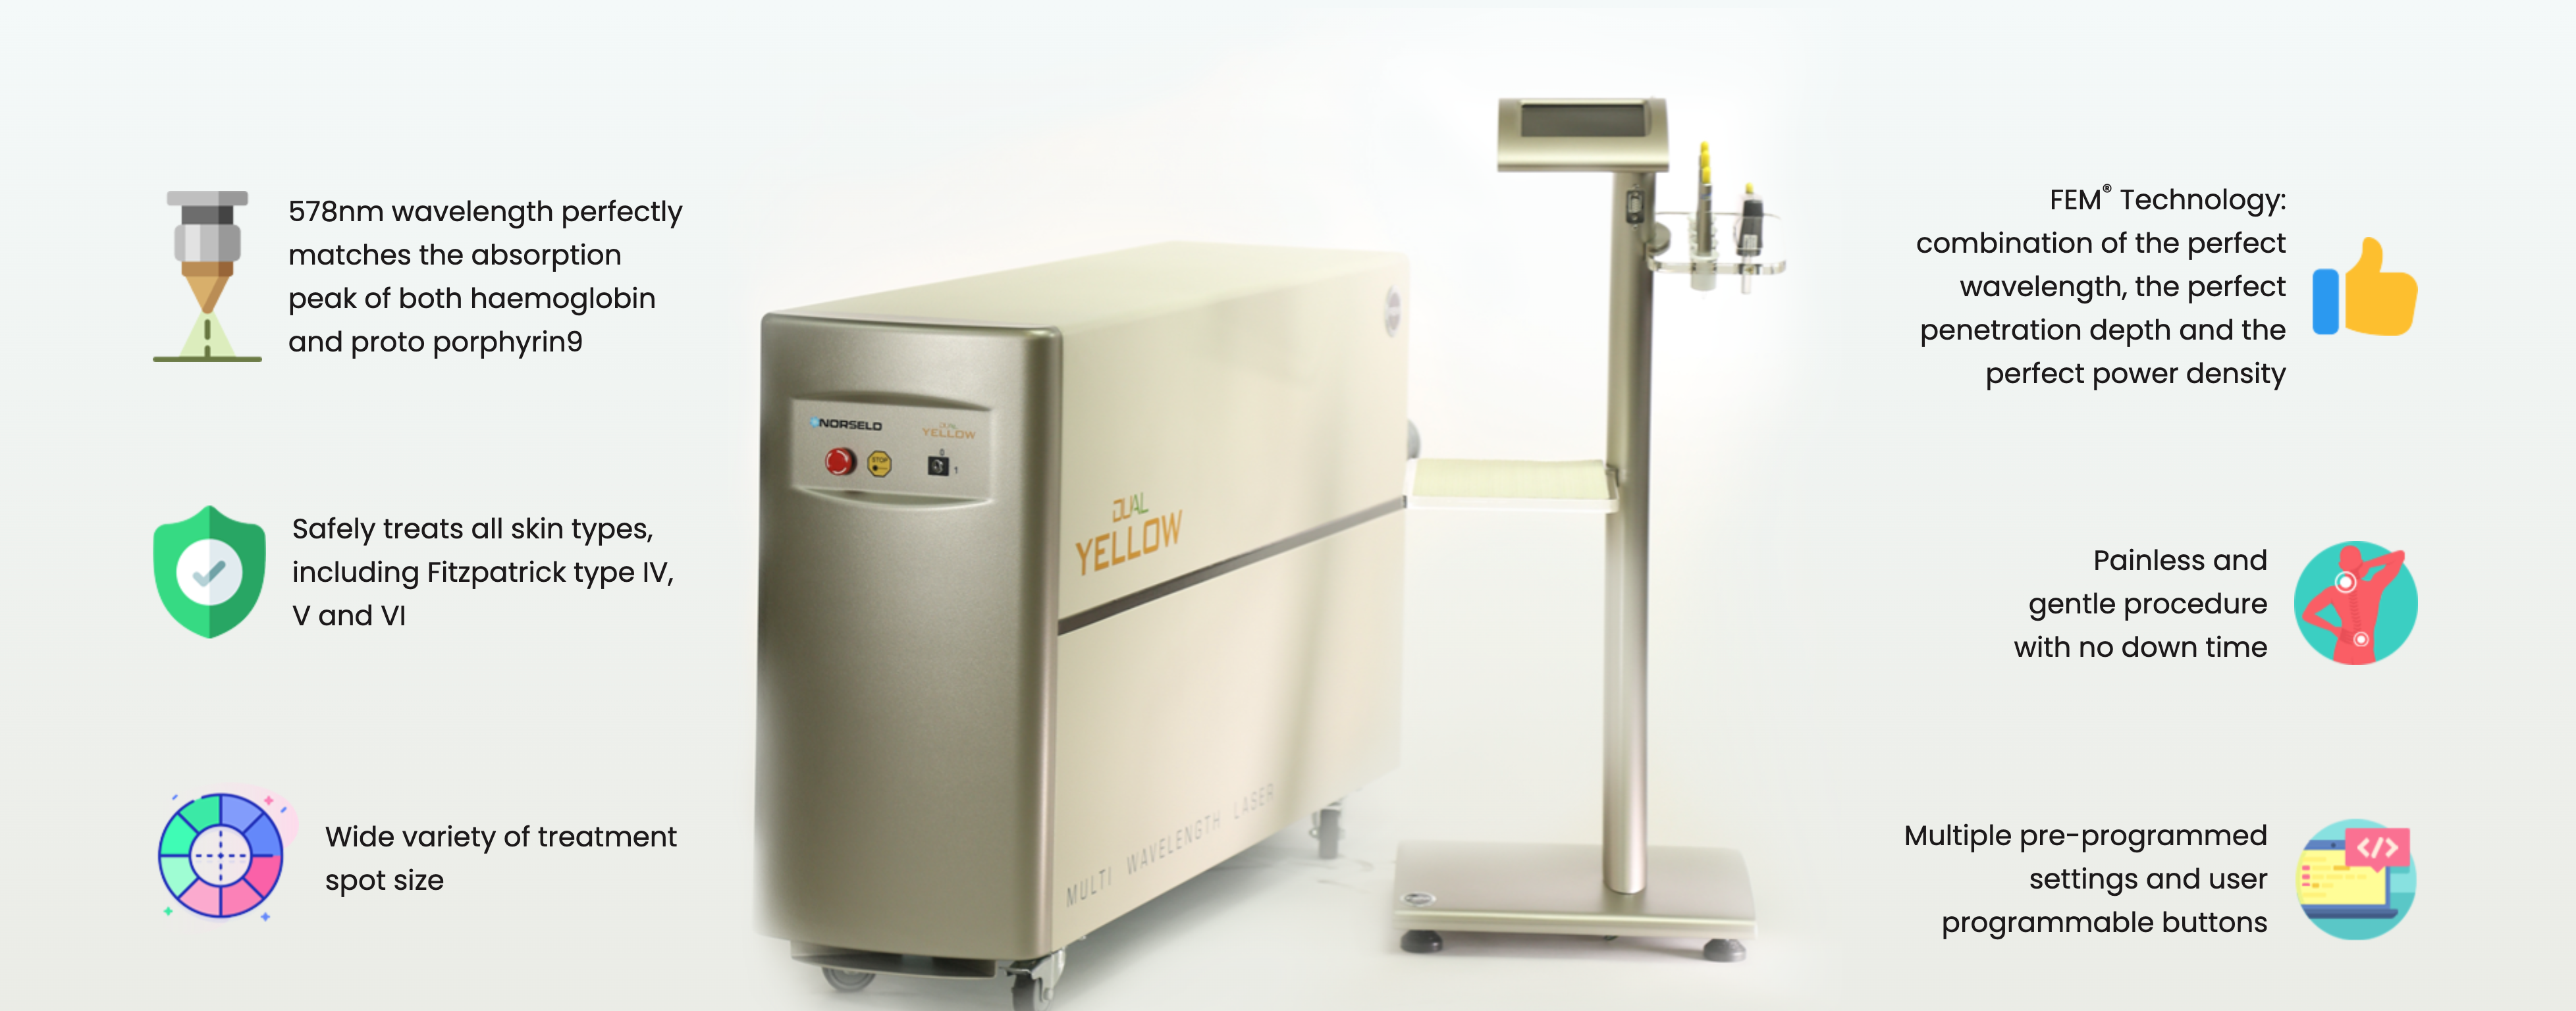 Norseld Dual Yello Laser at Dr Cindy's Medical Aesthetics